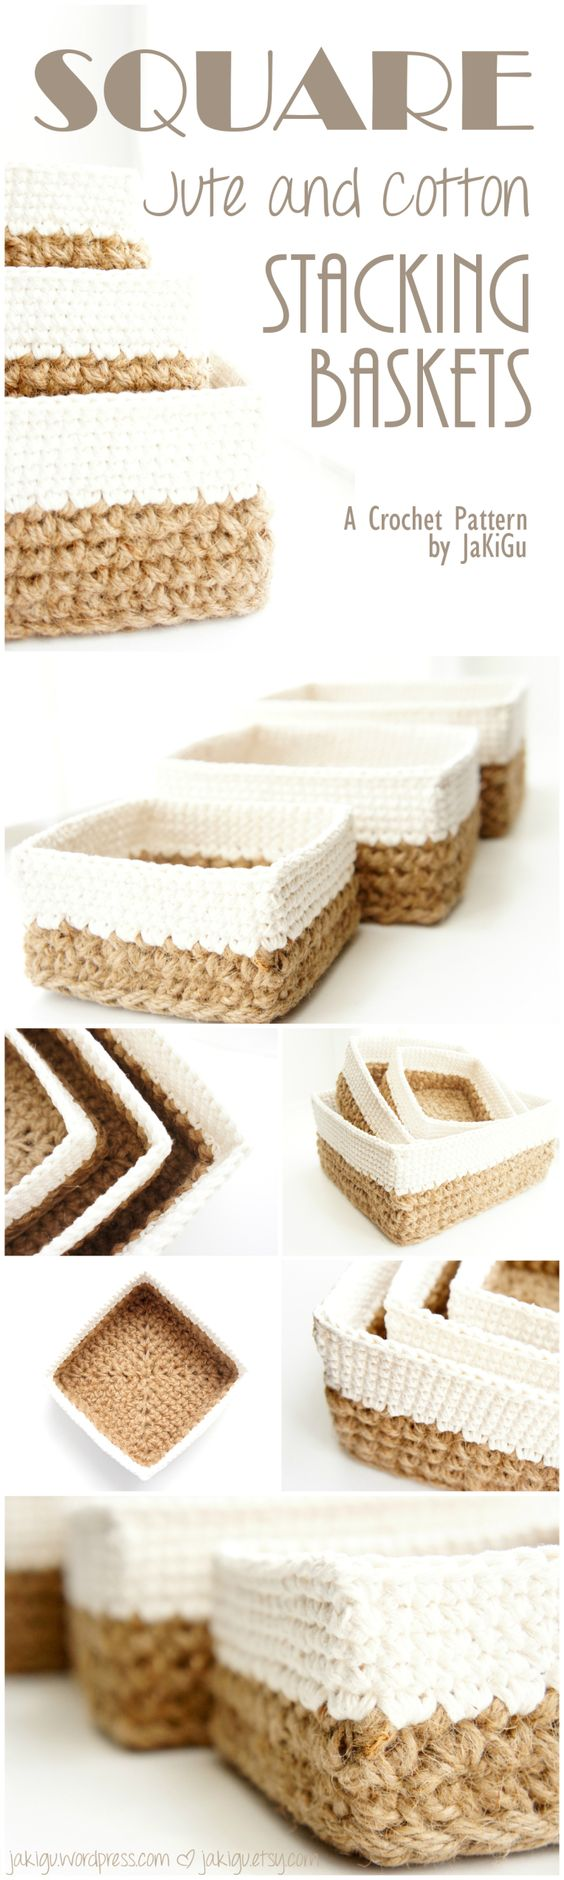 Crochet Pattern: Square Jute and Cotton Stacking Baskets by JaKiGu: